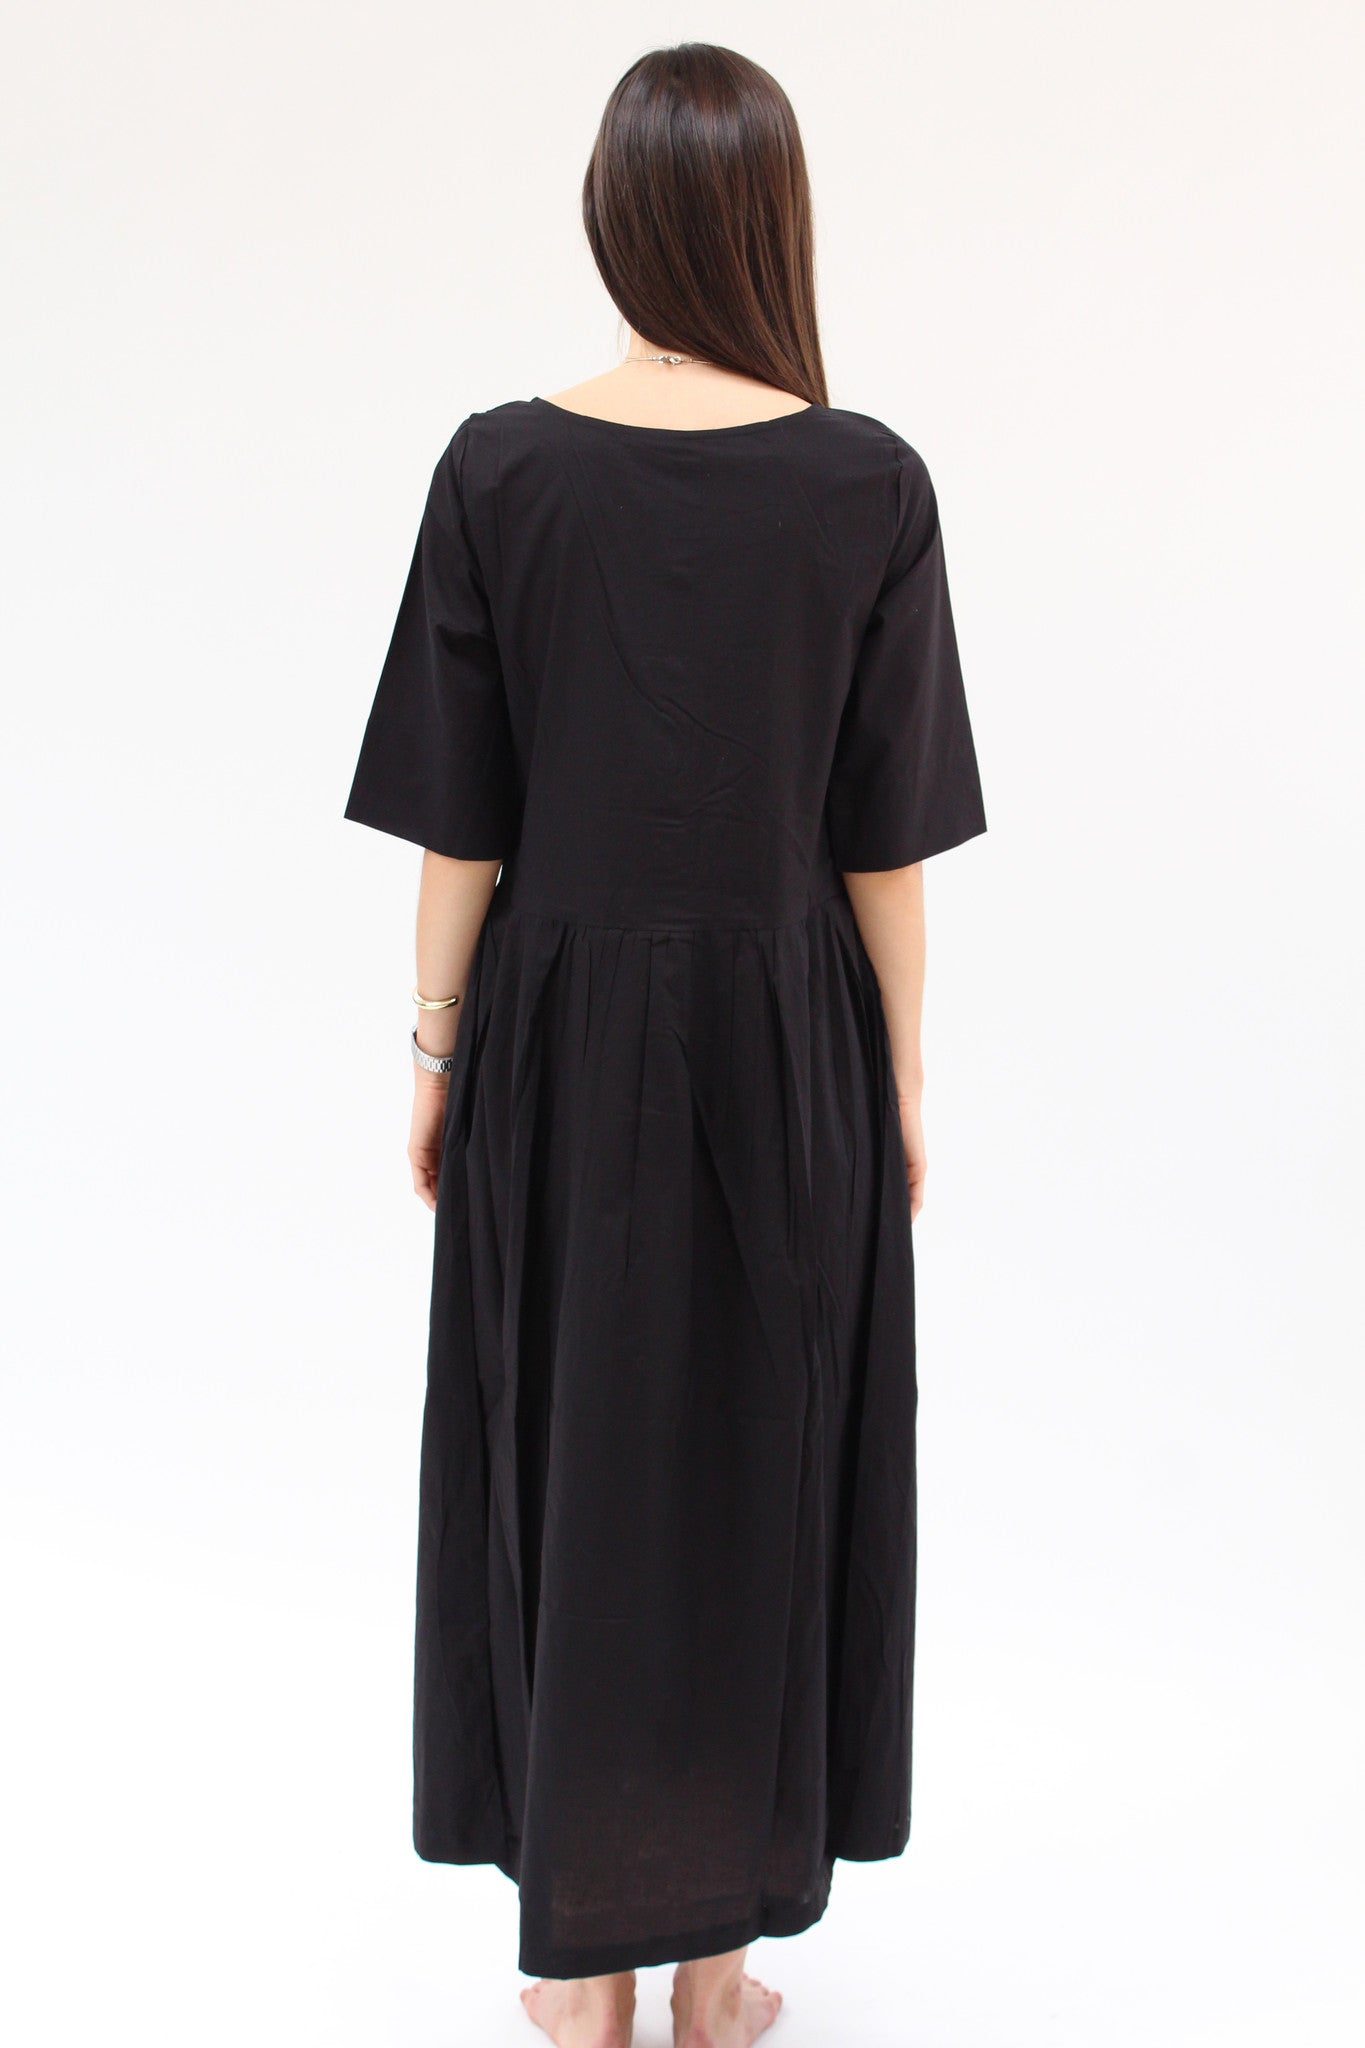 Kowtow Momentum Dress Black / Beklina